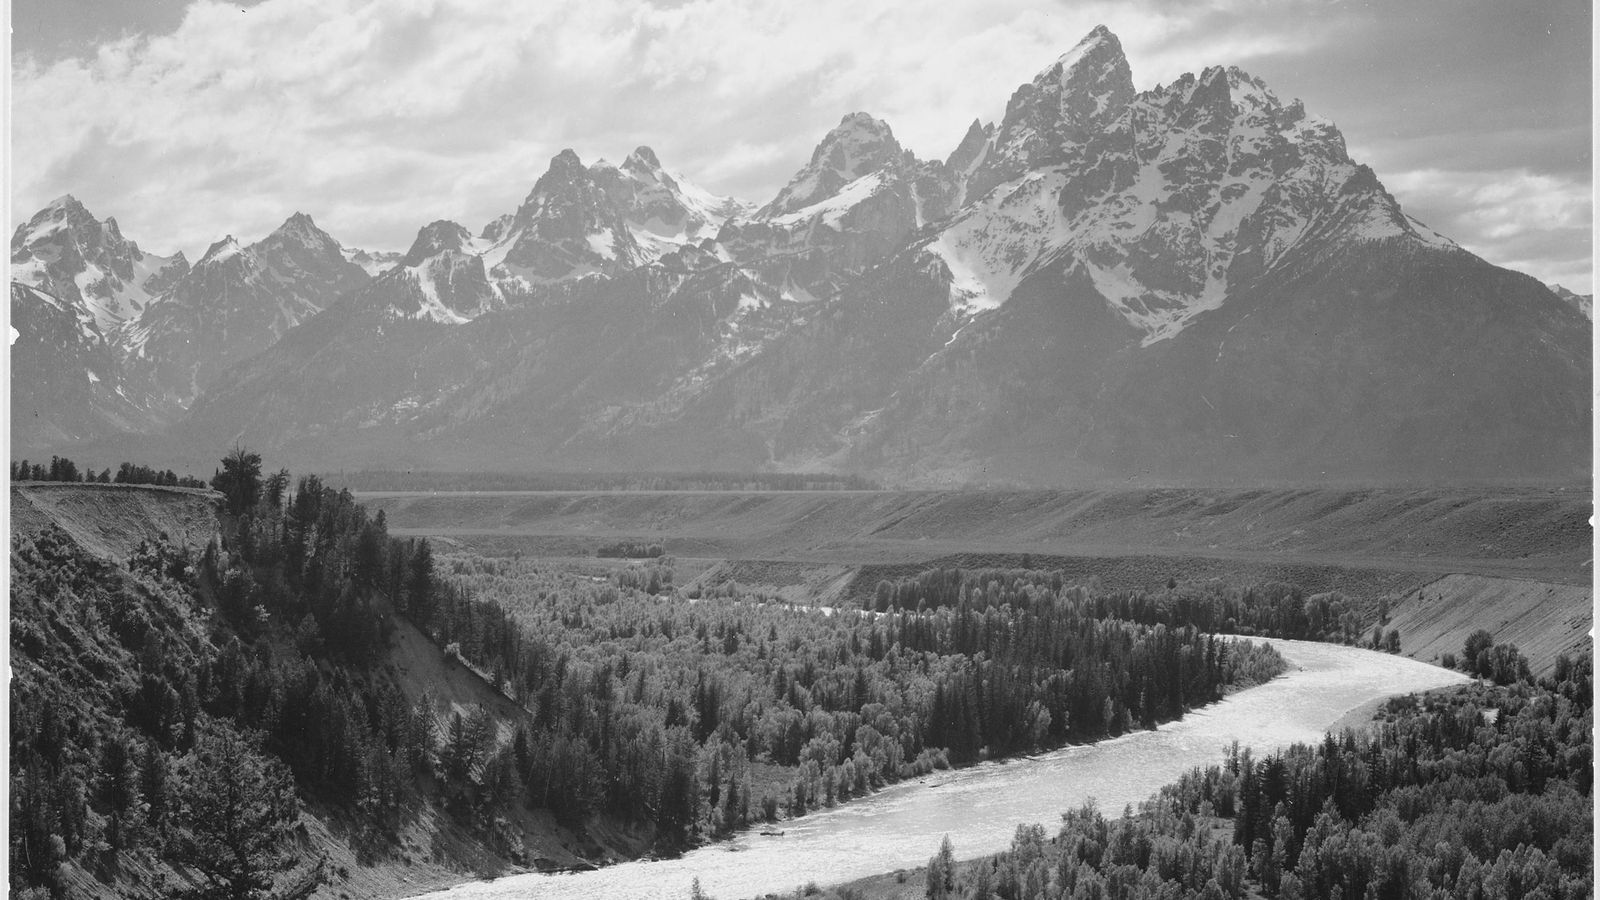 The National Park Service Wants To Hire A New Ansel Adams